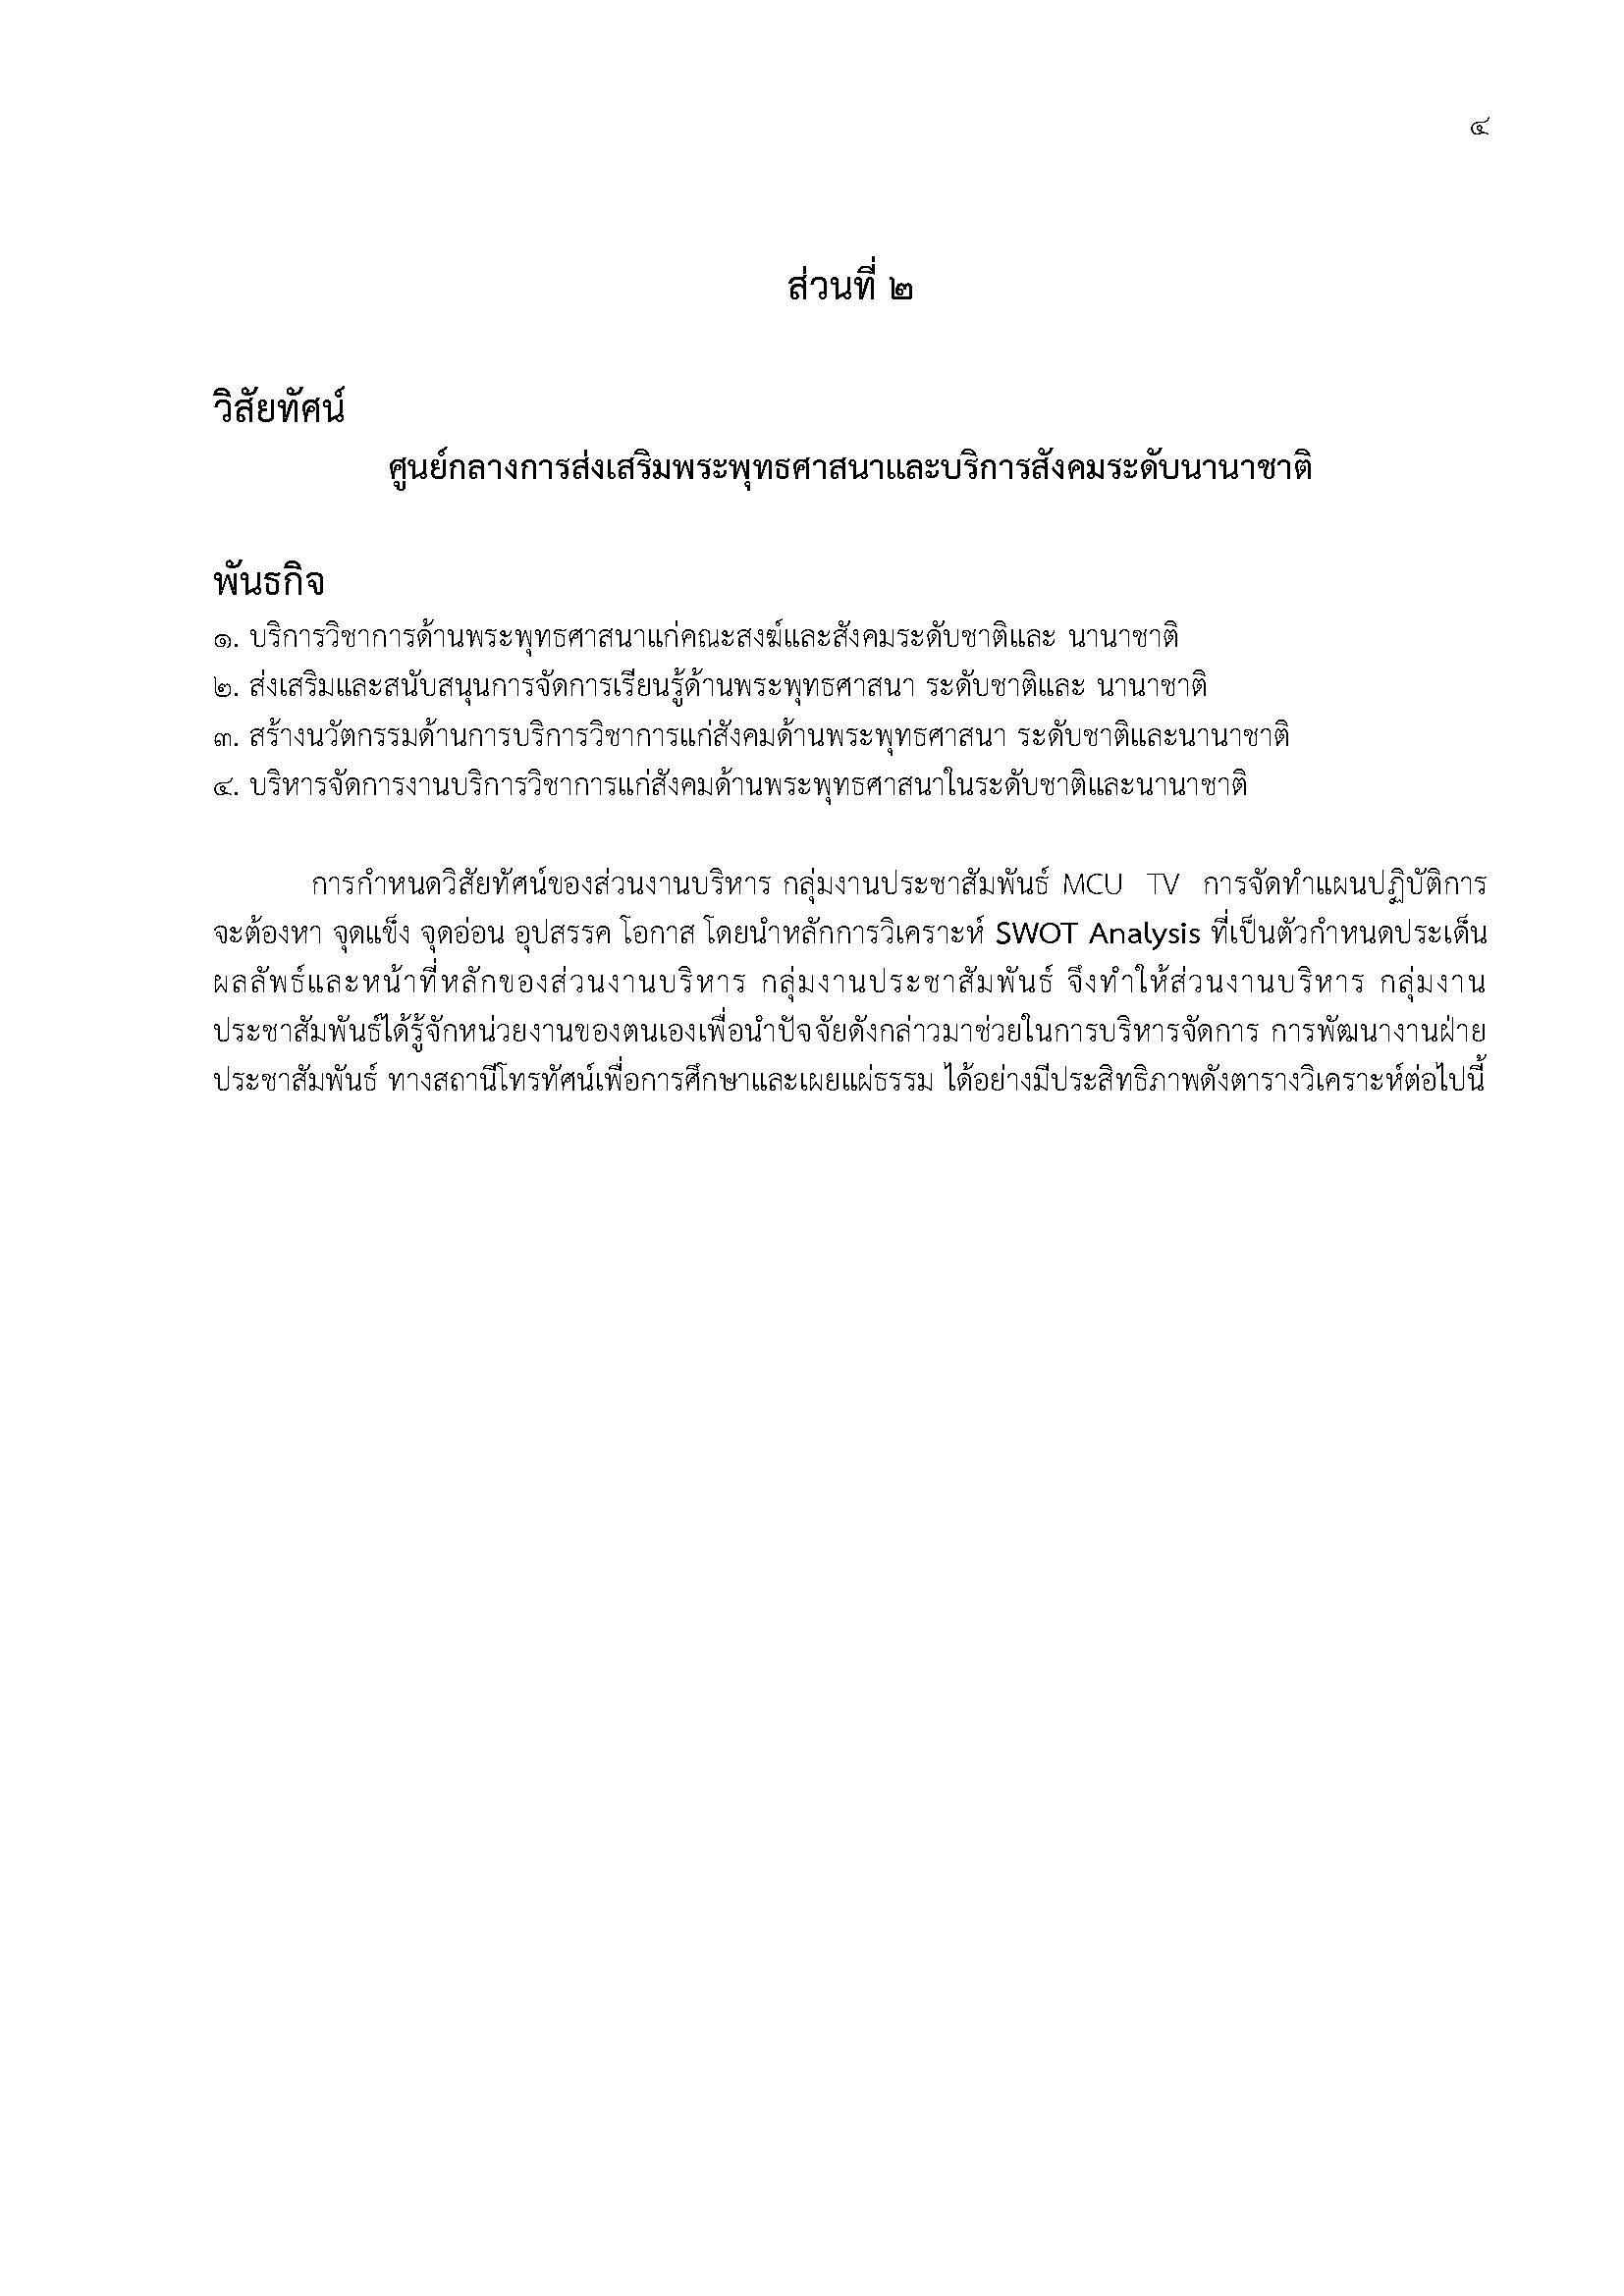 QC_Page_04